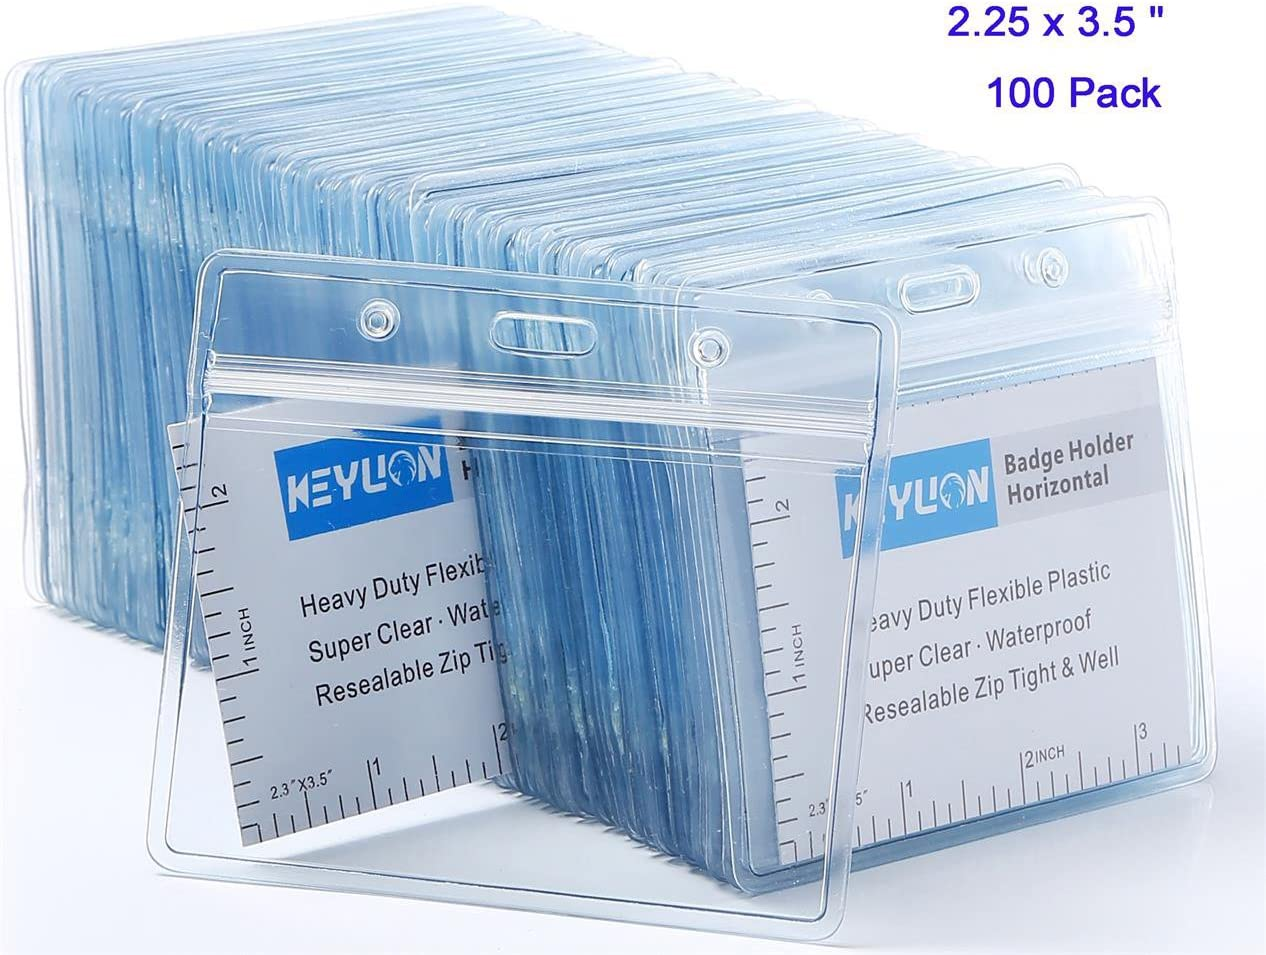 """KEYLION 100 Pack Horizontal Name Tag Name Badge ID Card Holders, Heavy Duty Clear Plastic ID Sleeve Pouch with Waterproof Type Resealable Zip, fit 2-1/4"""" x 3-1/2"""" Name Badge Insert Refill"""